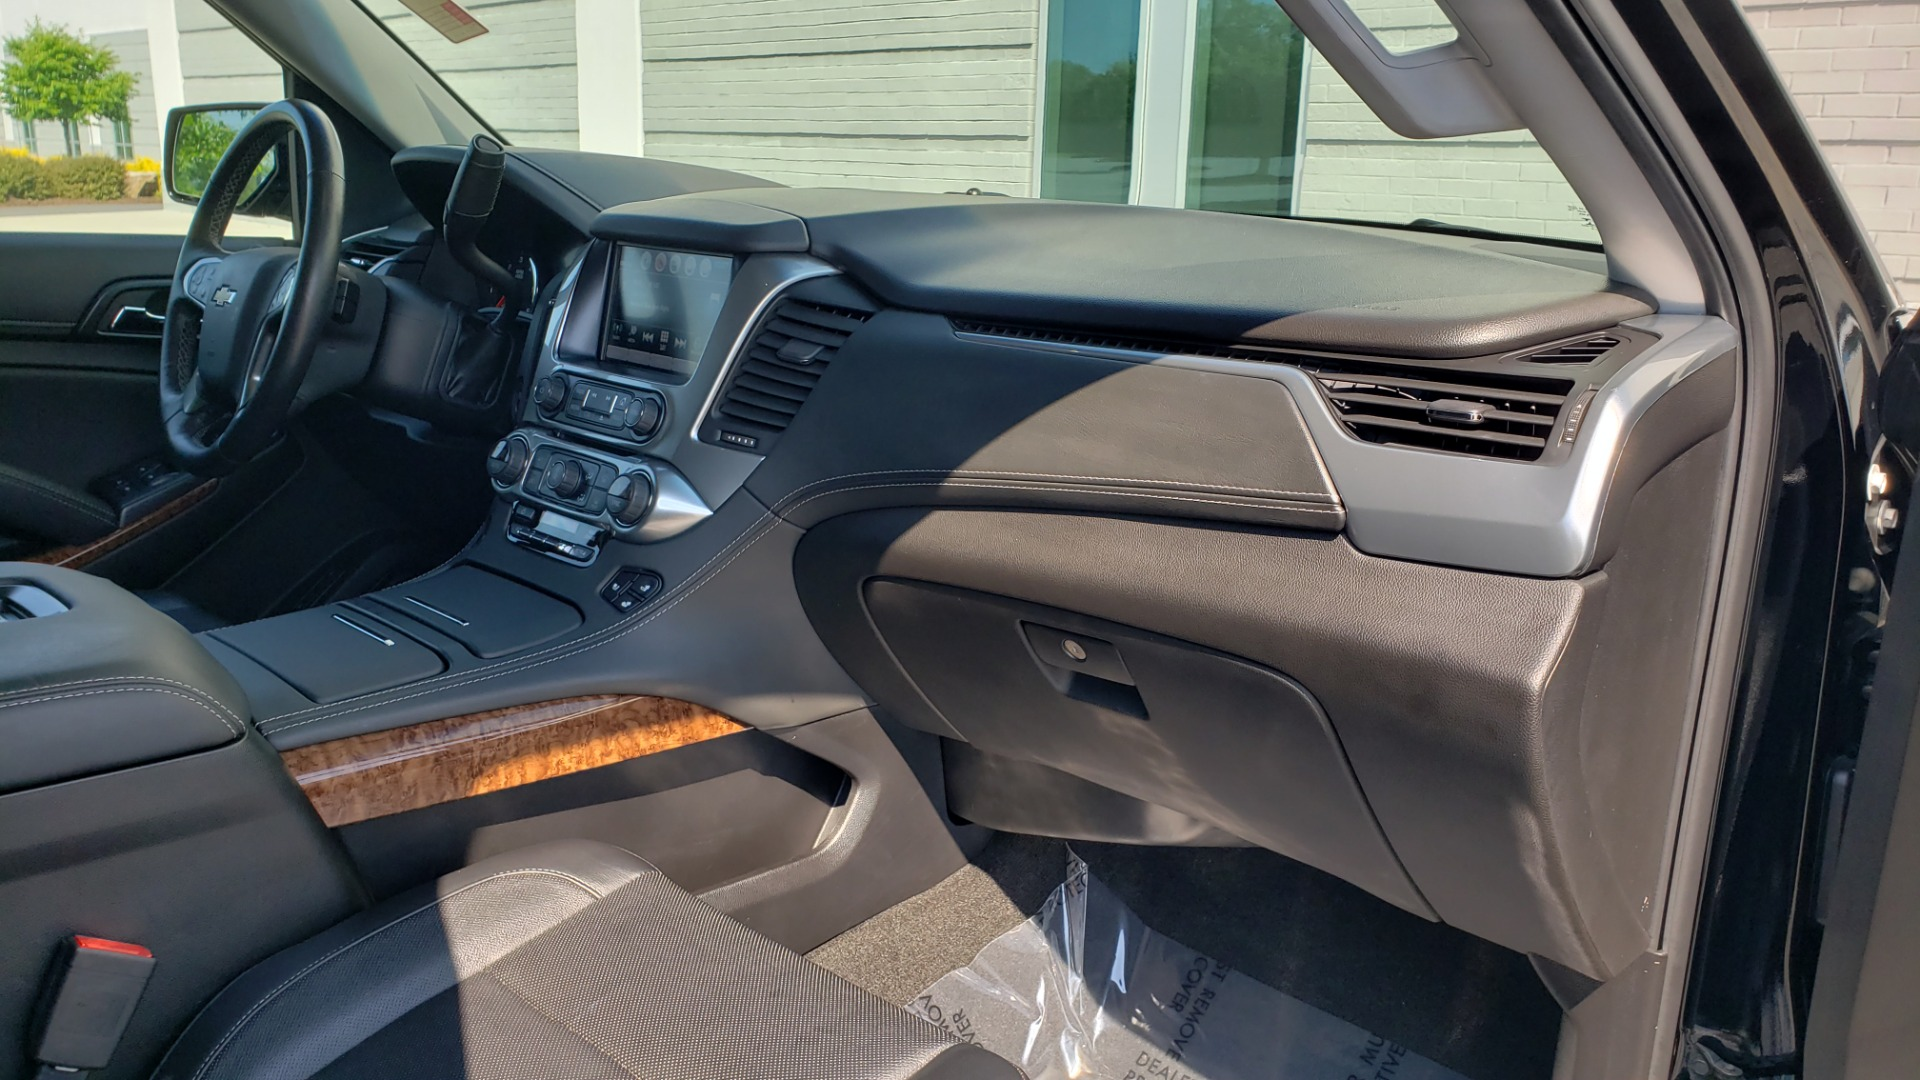 Used 2018 Chevrolet TAHOE PREMIER RST / 4X4 / NAV / BOSE / SUNROOF / 3-ROW / REARVIEW for sale $65,995 at Formula Imports in Charlotte NC 28227 76